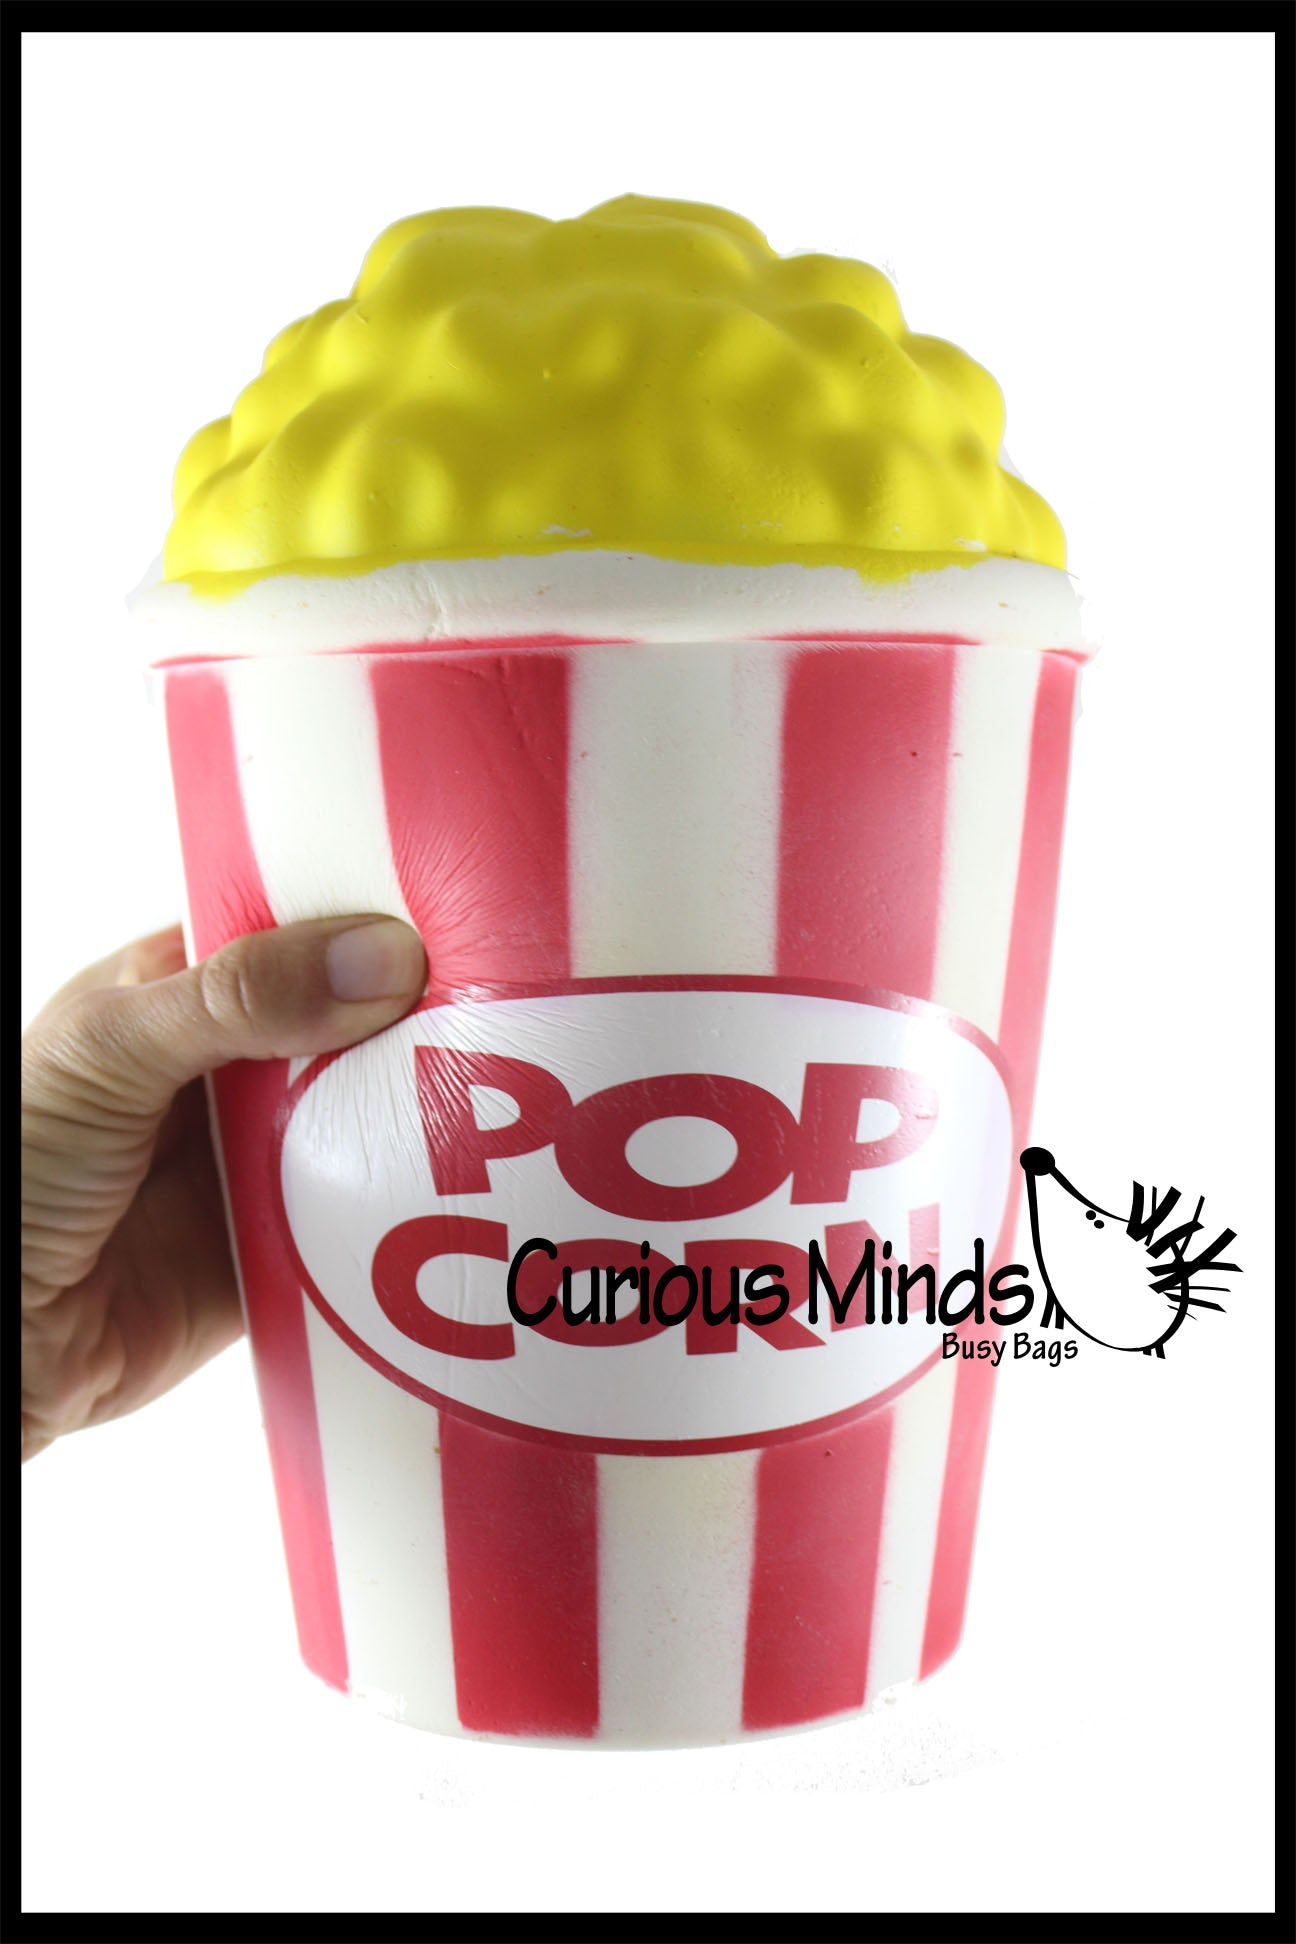 JUMBO Popcorn Squishy Slow Rise Foam Junk Food -  Scented Sensory, Stress, Fidget Toy